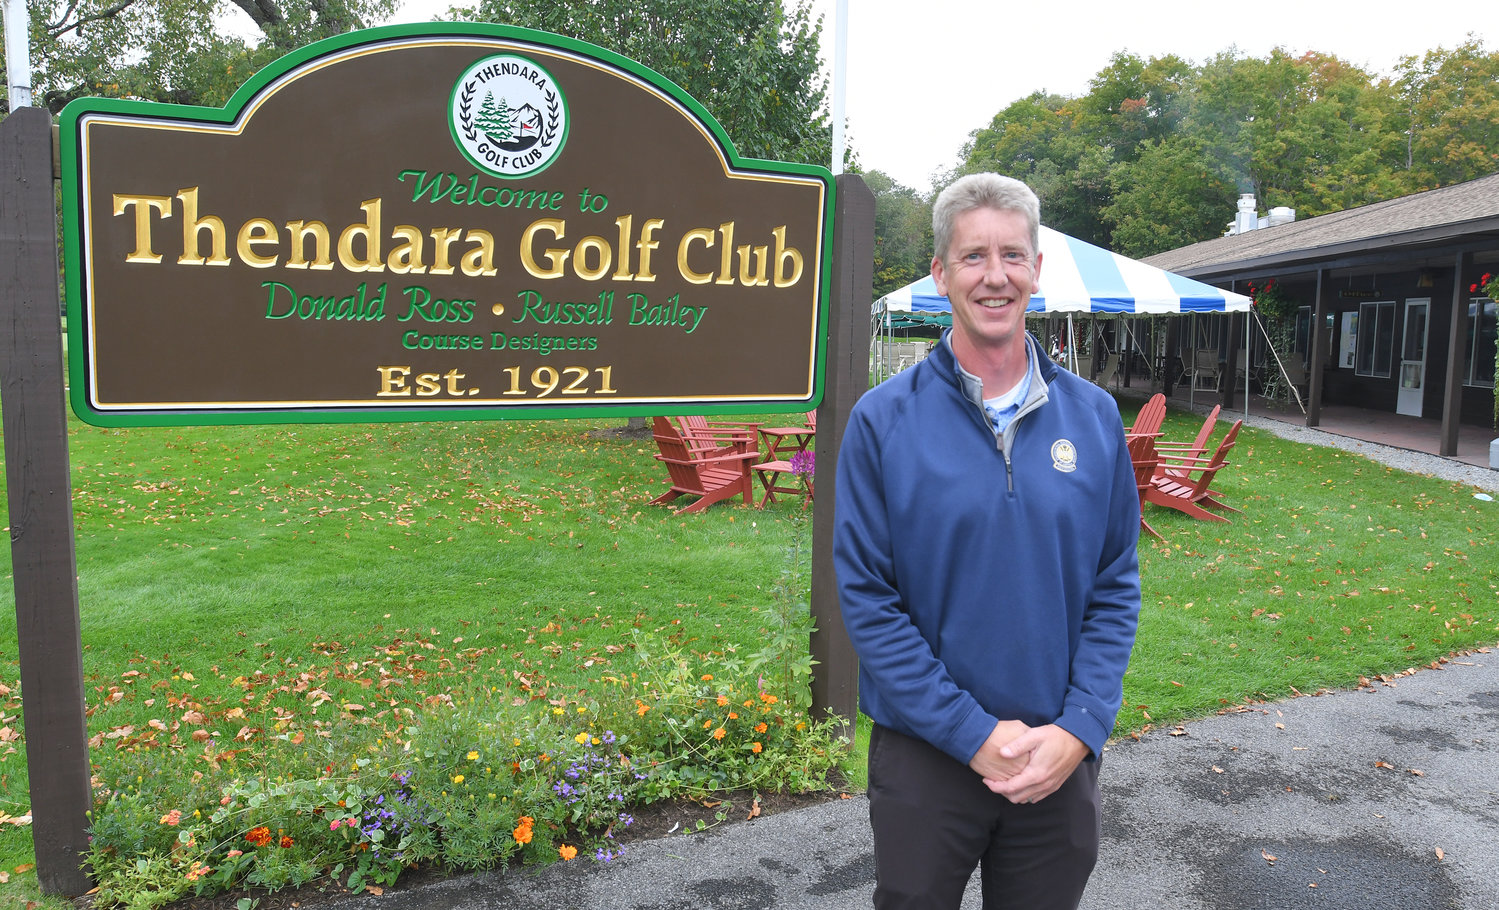 THENDARA GOLF PRO — Thendara Golf Club PGA professional Rich Chapman poses for a photo in front of the sign welcoming players to the club and the clubhouse.